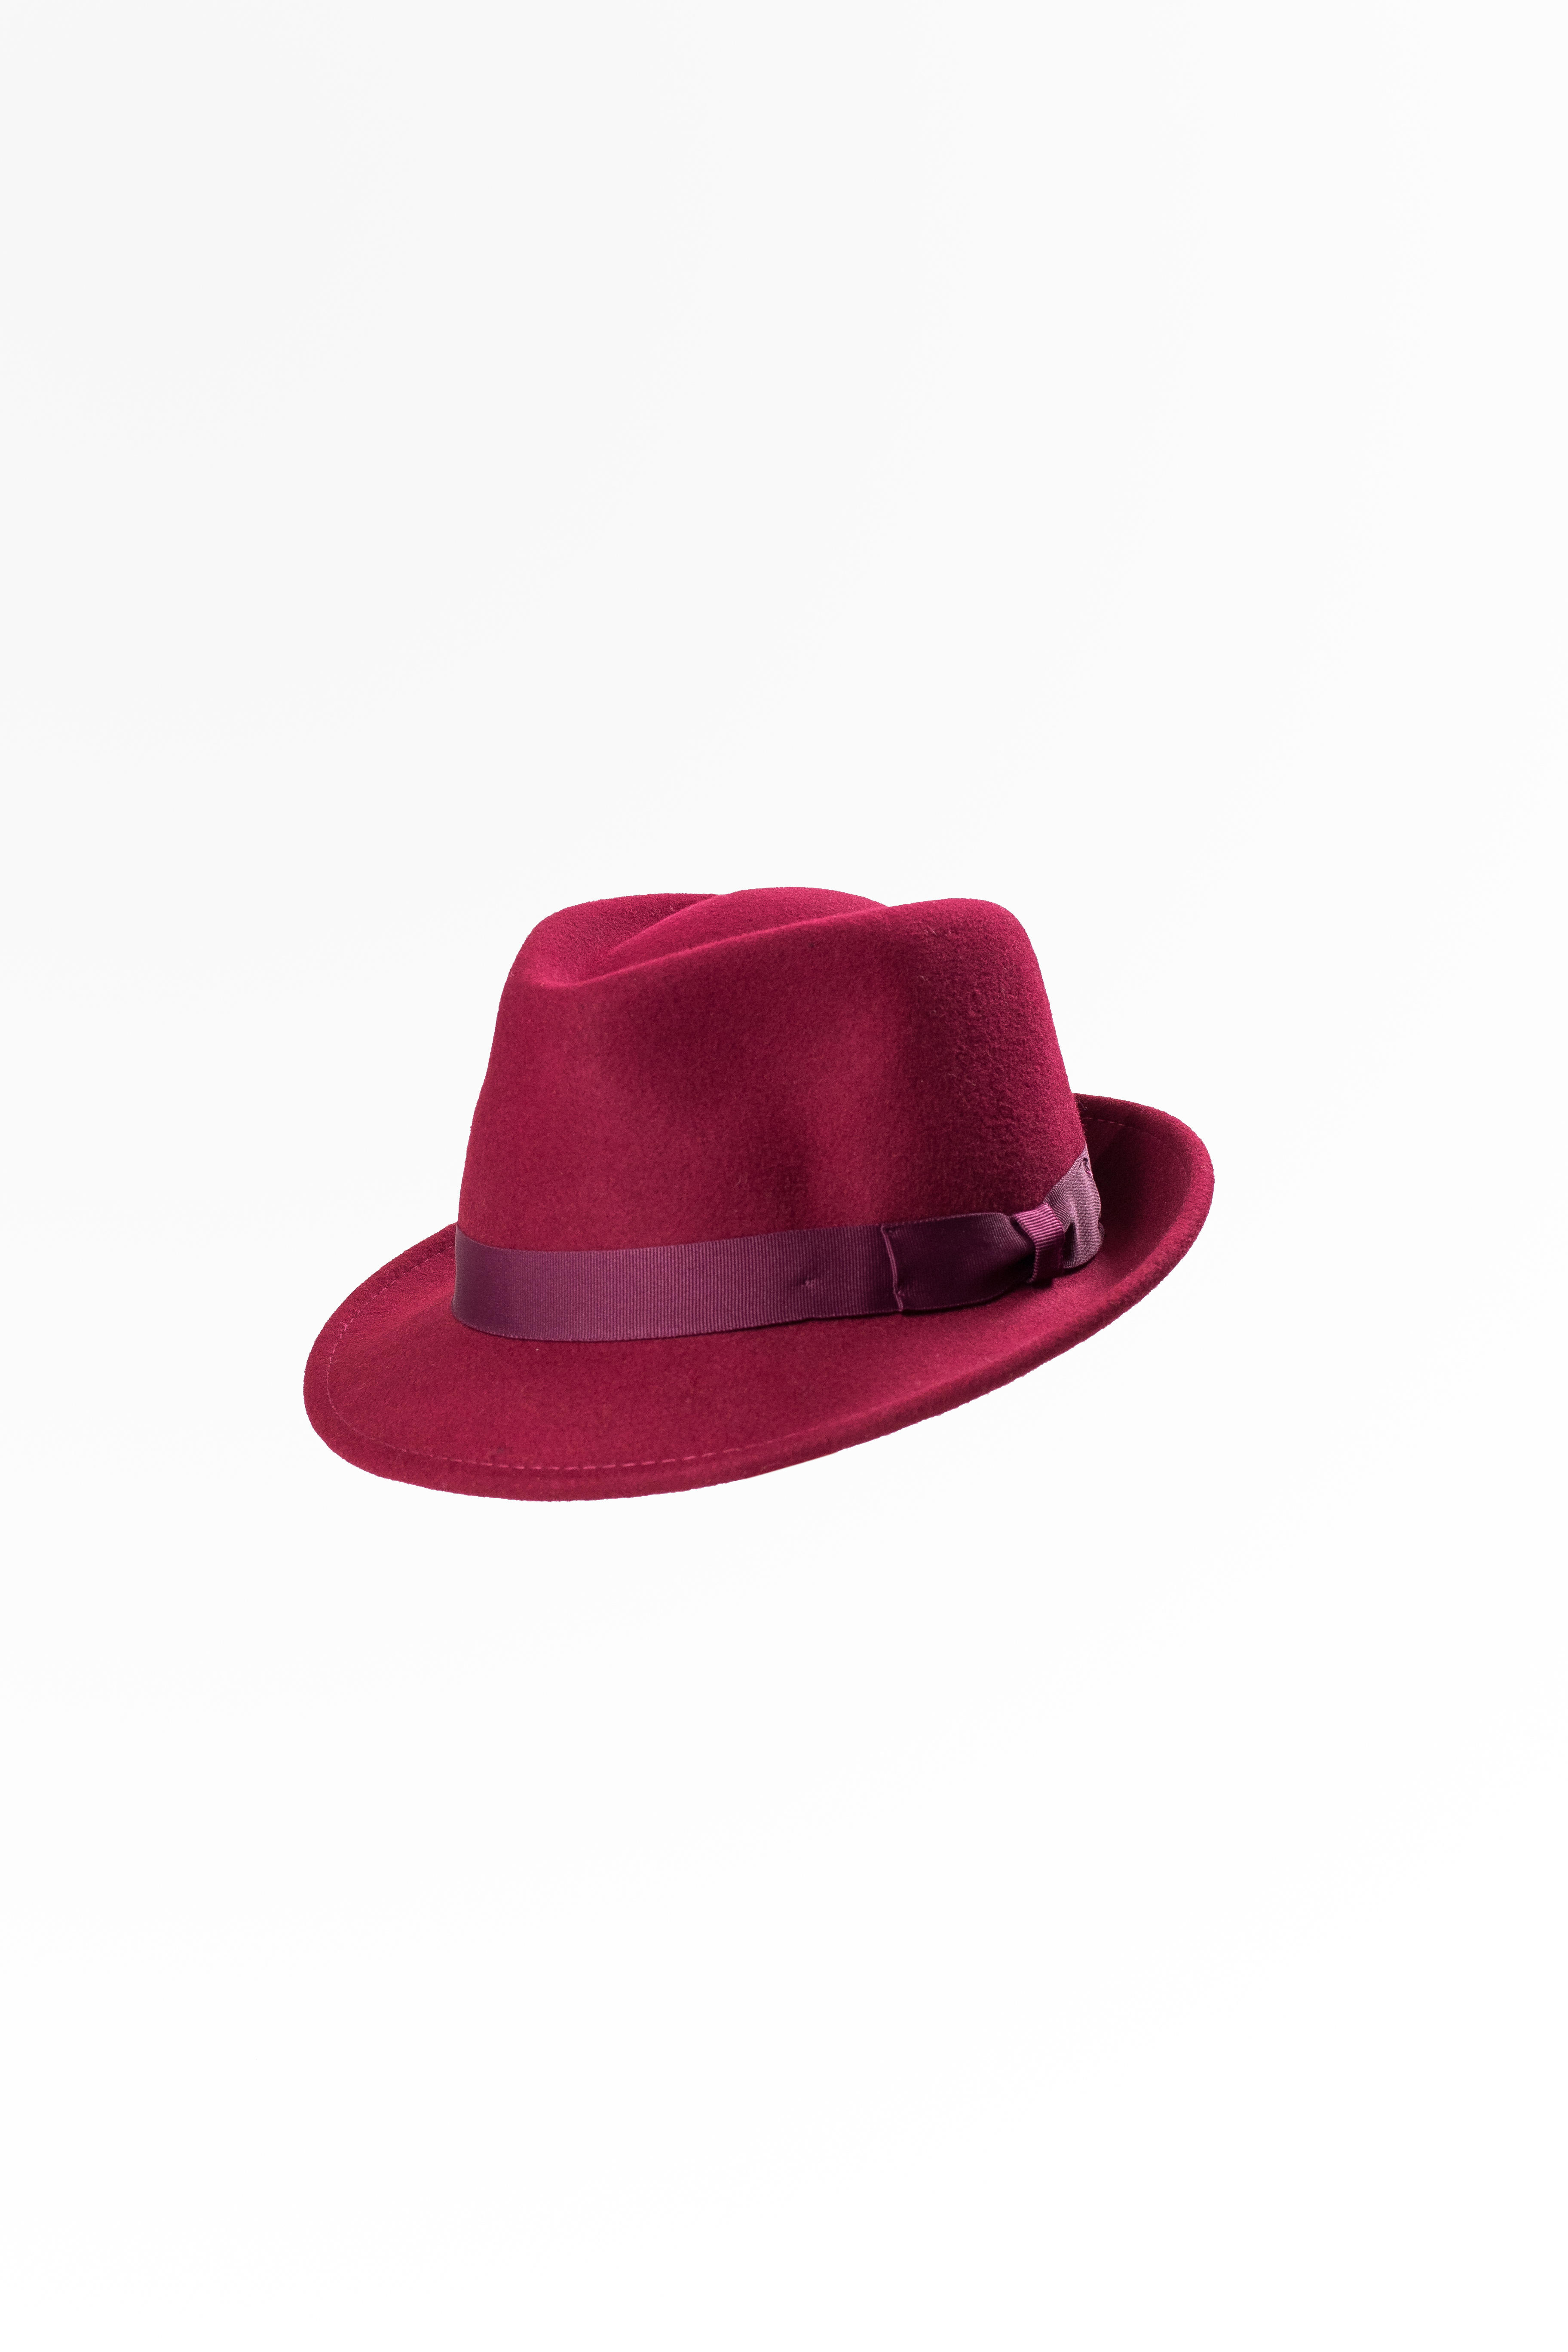 Wool Felt Trilby Hat Wine